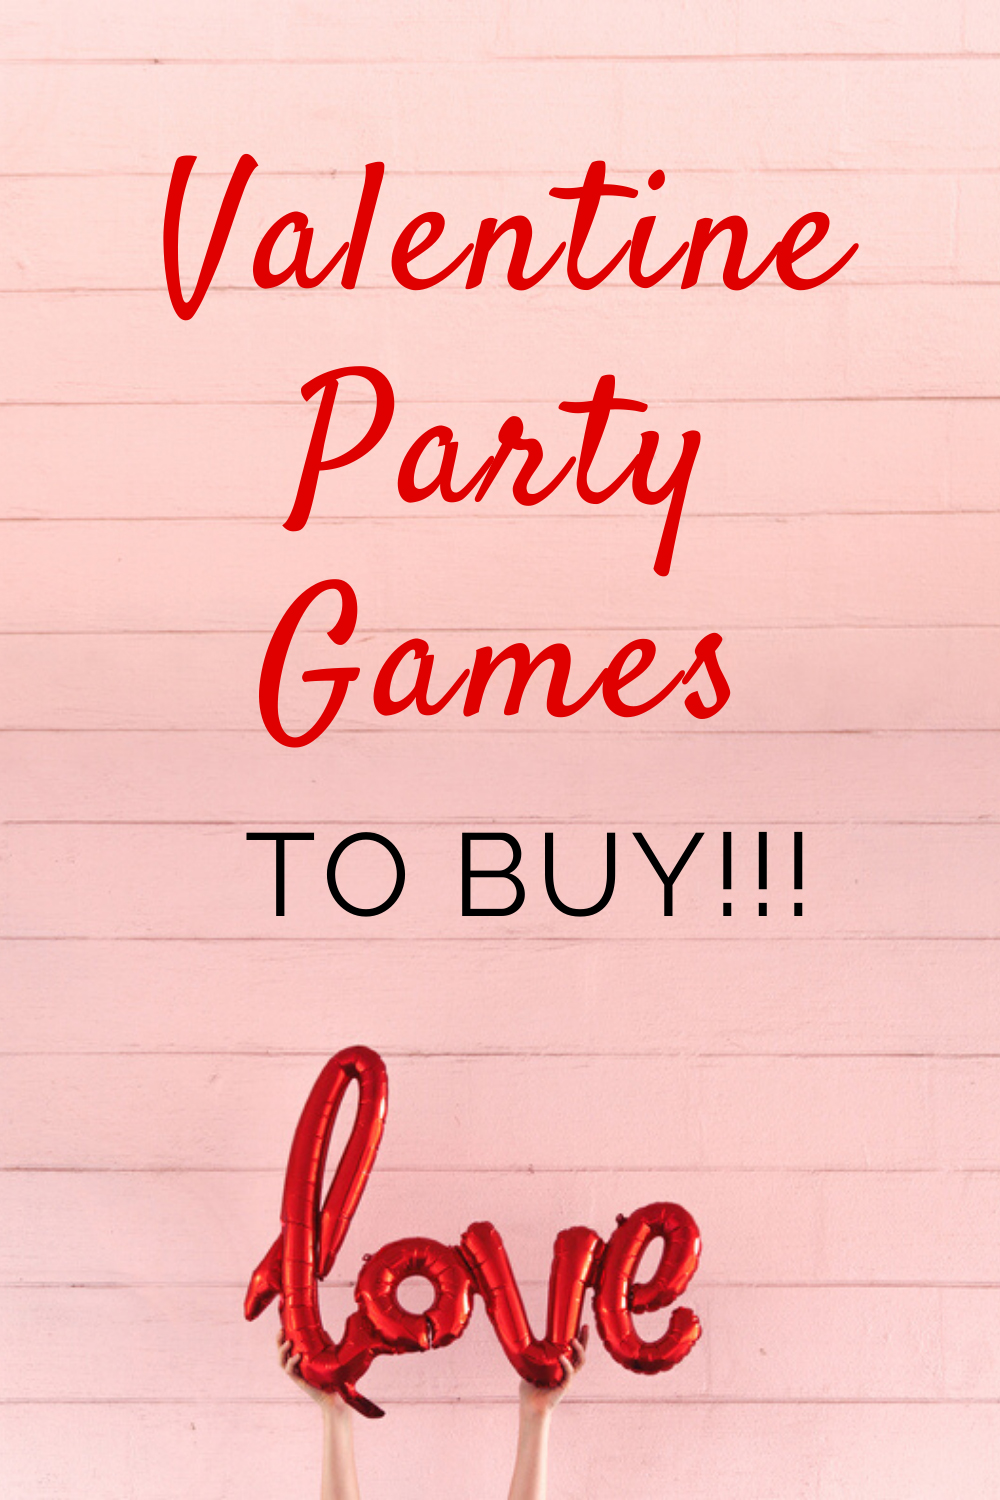 The best Valentine Party Games to buy